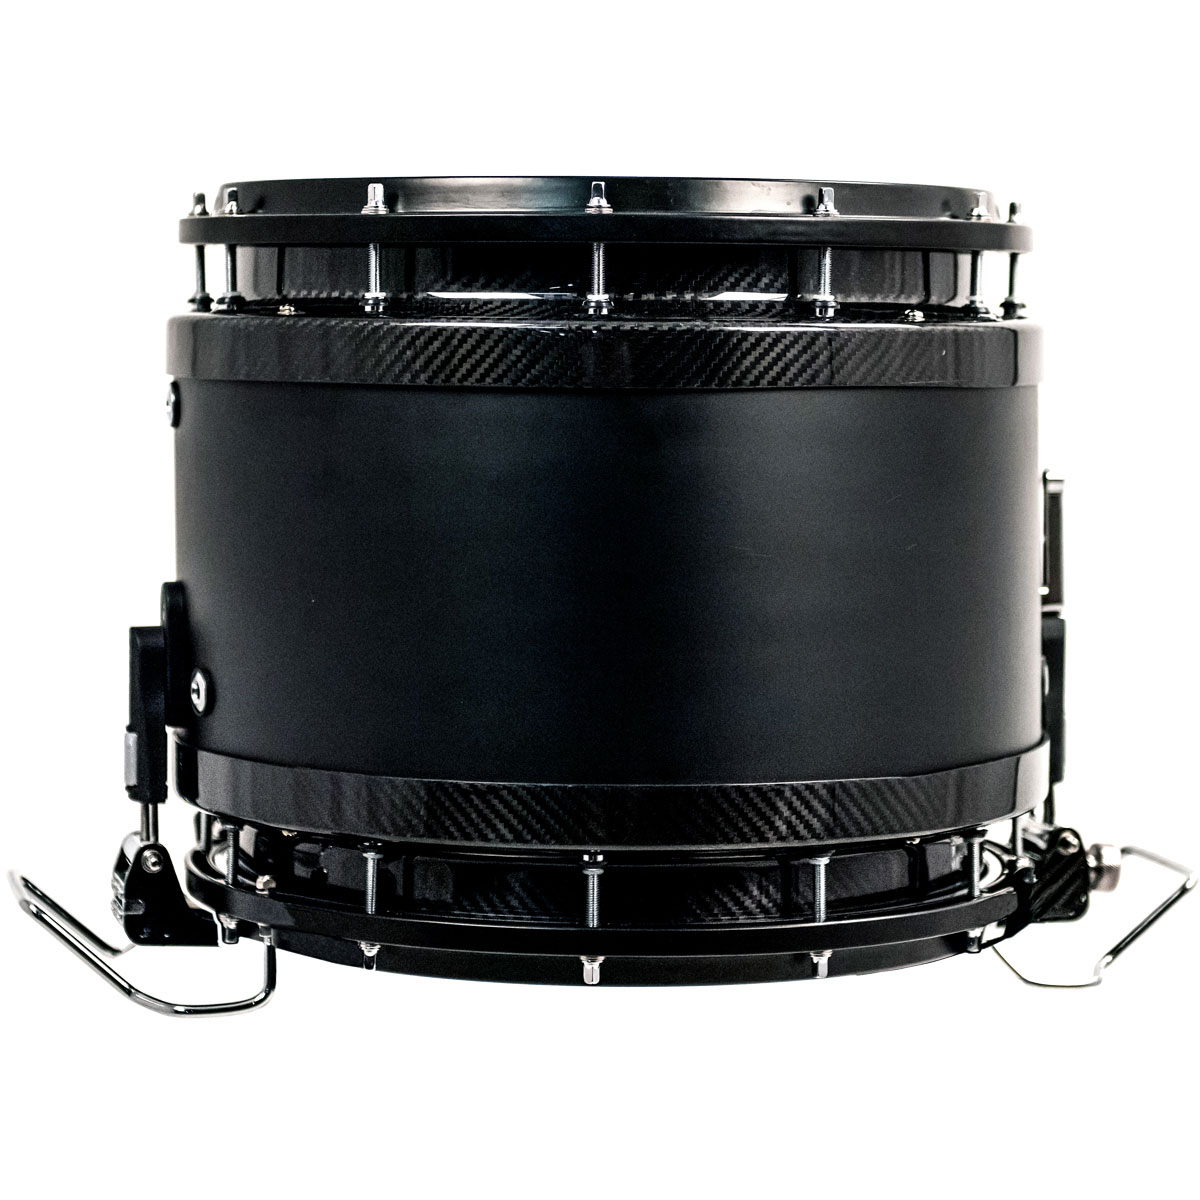 "System Blue 12"" x 14"" Professional Series Phatboy Marching Snare Drum"